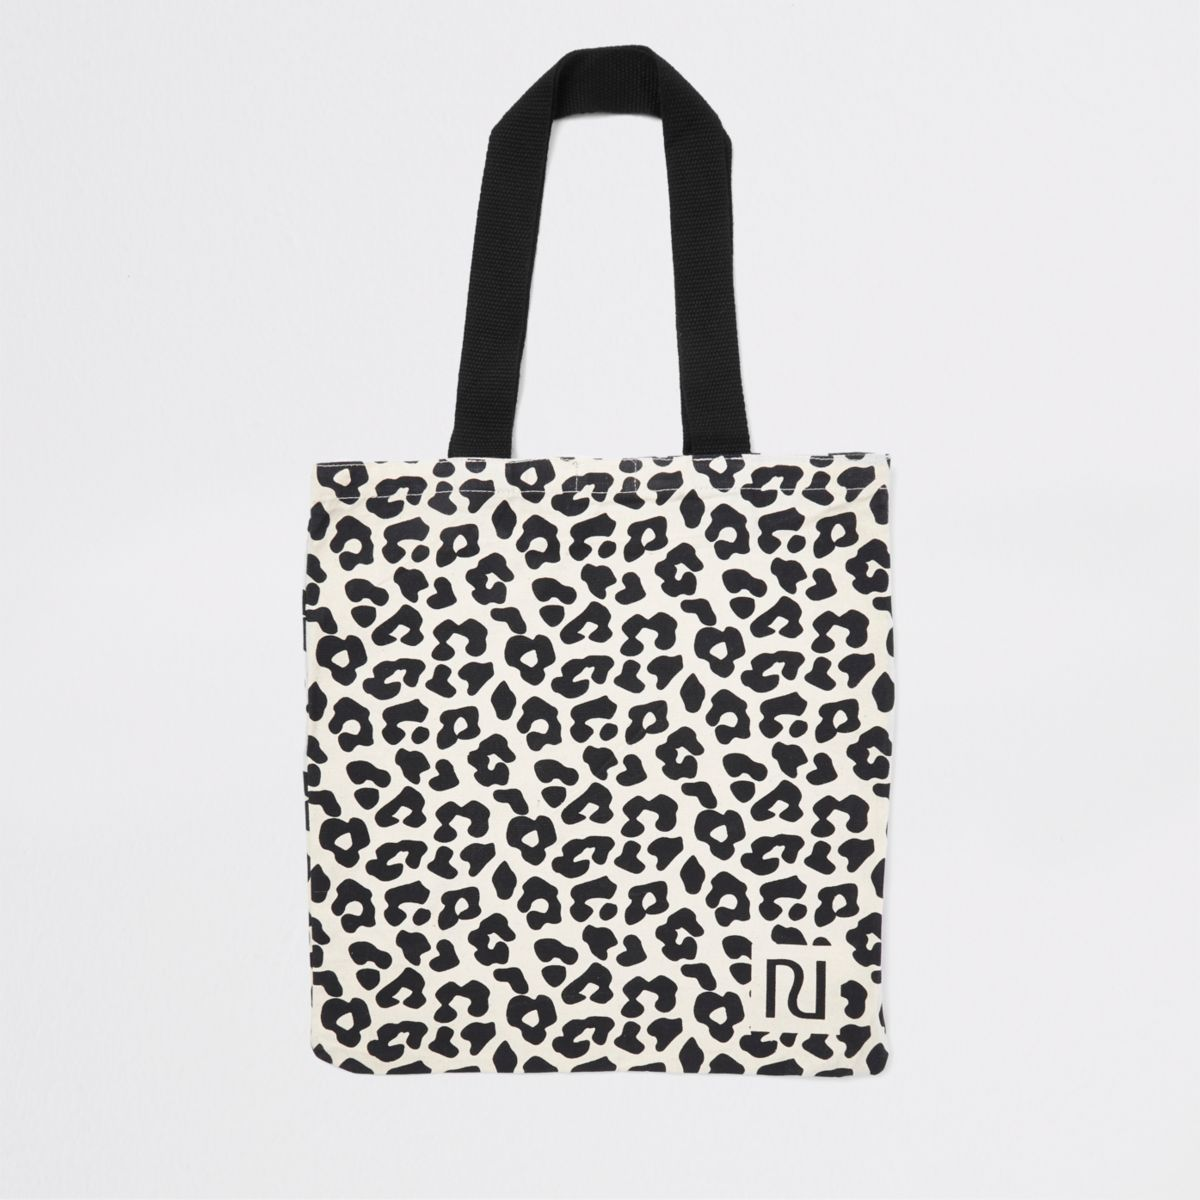 Beige leopard print shopper tote bag